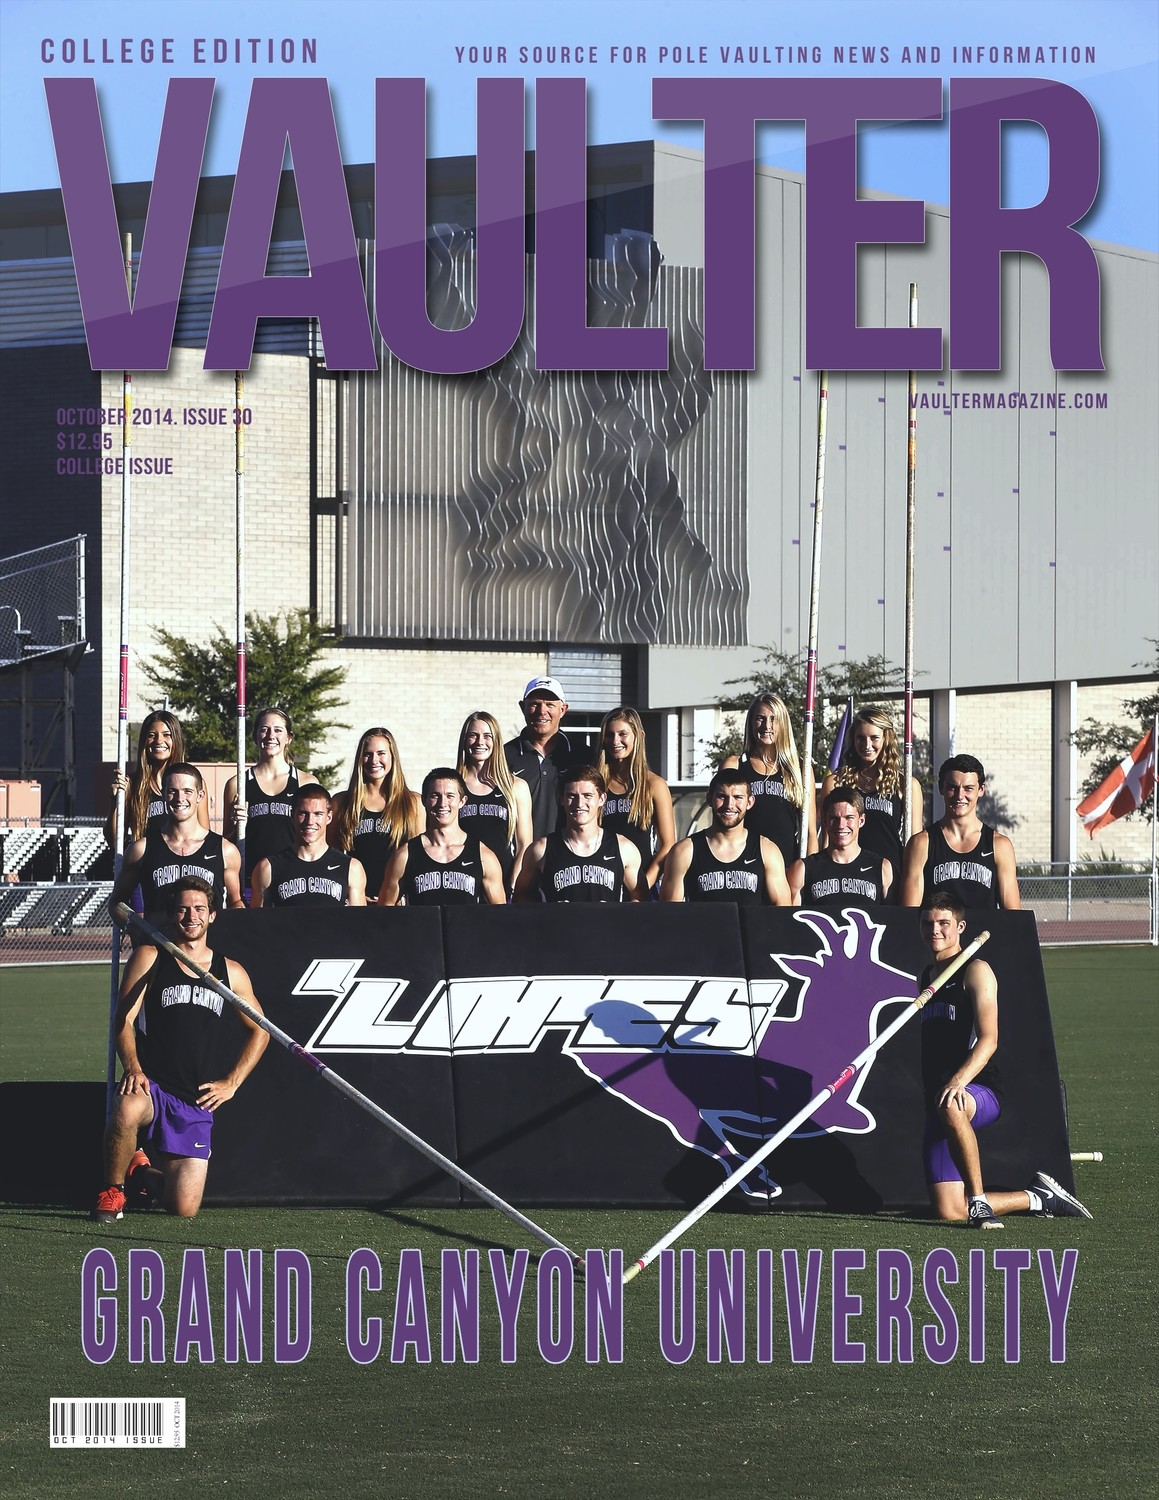 Buy a Grand Canyon University Magazine - Get Poster for $20 - That's $5 Off